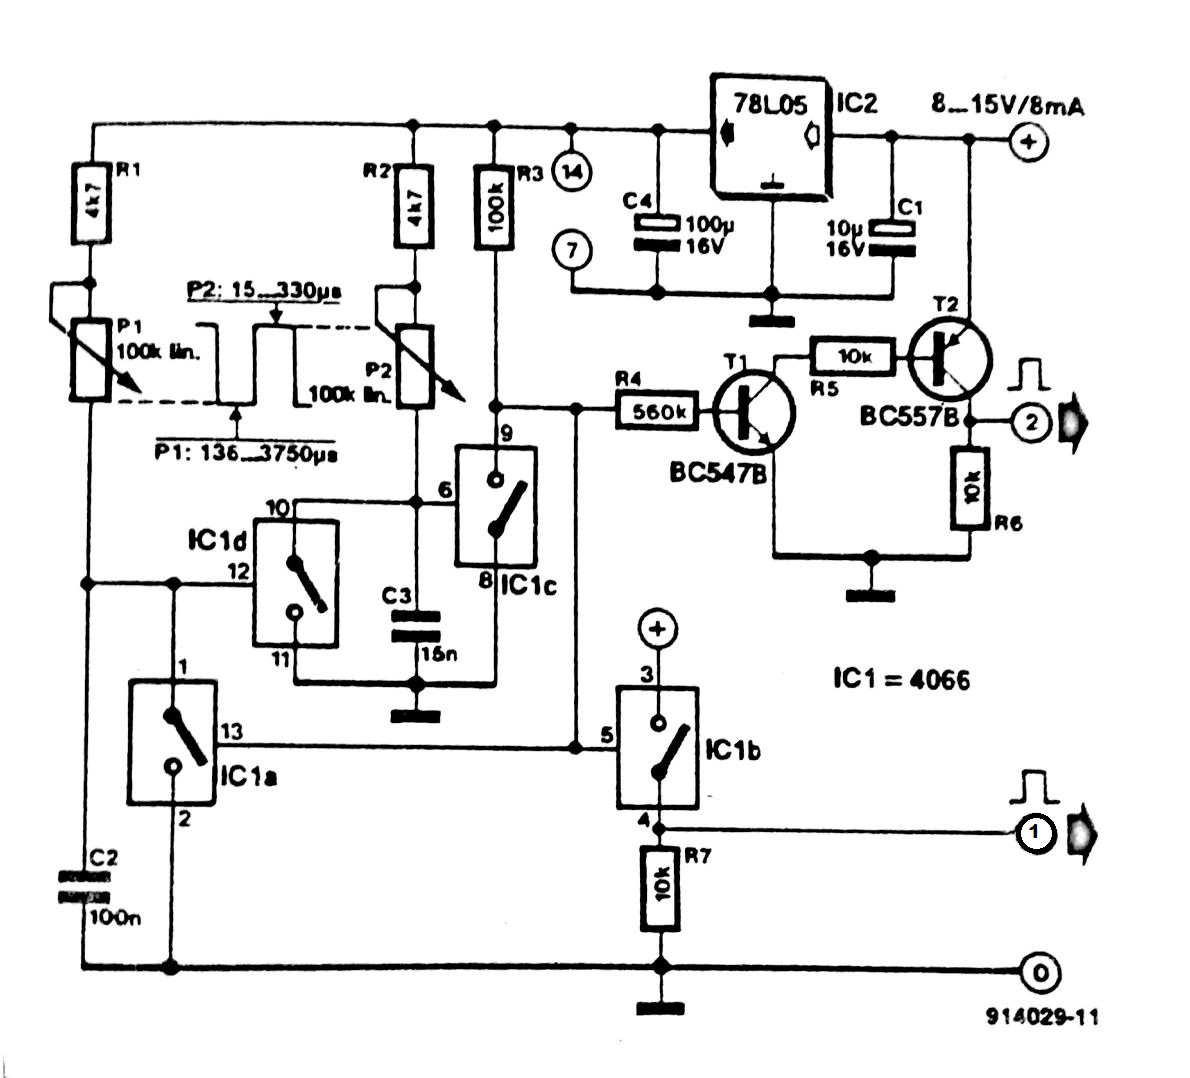 Pulse Generator With One 4066 Circuit Diagram Simple Touch Switch Using 555 Ic Meanwhile 1c Is Closed So That C2 Discharged 1a Opened And C3 Charged Via P2 When The Voltage Across Has Reached A